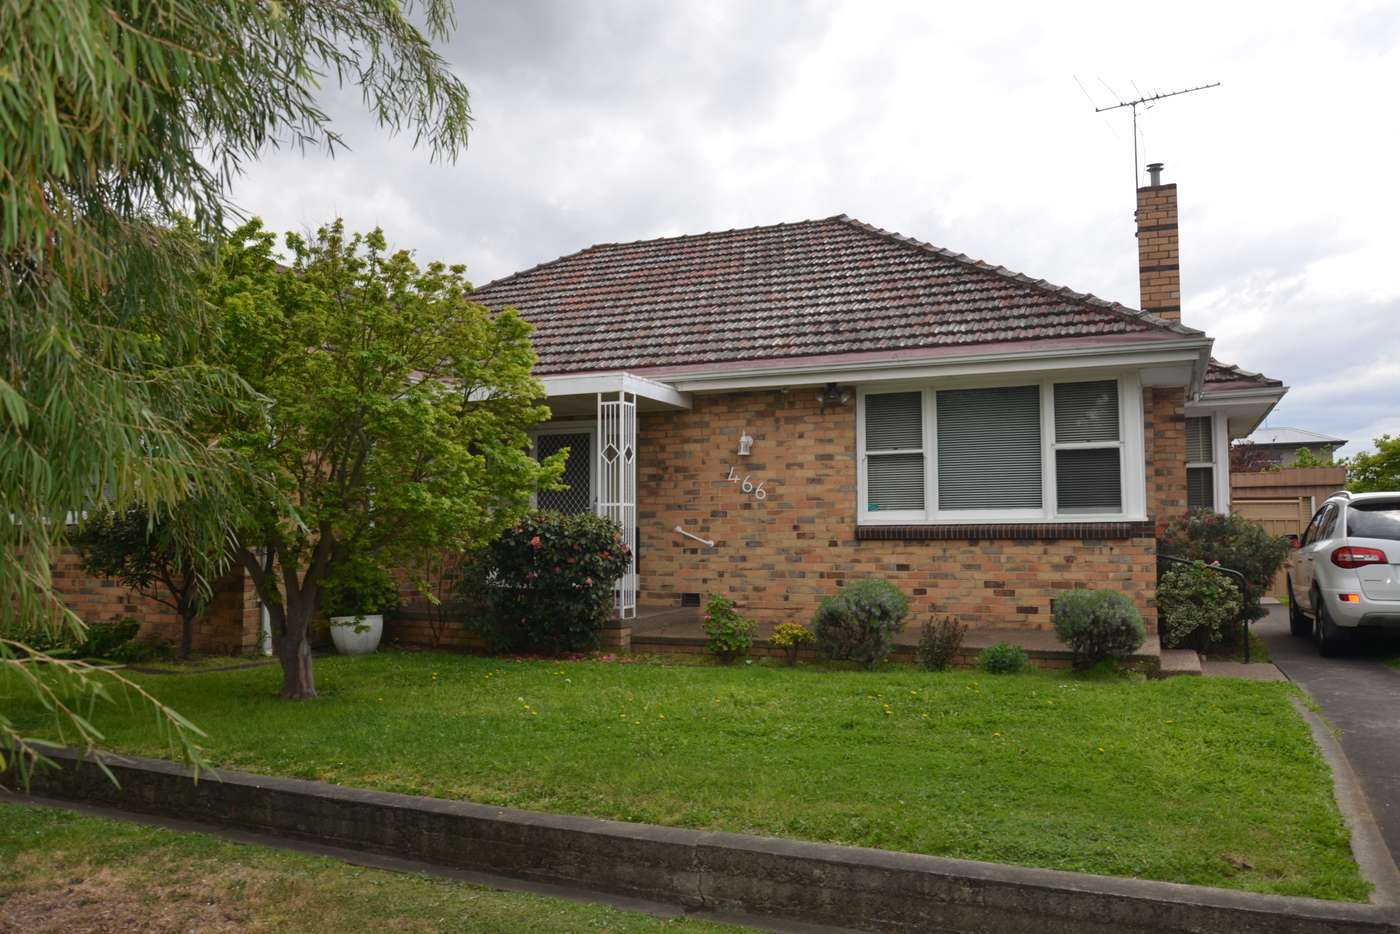 Main view of Homely house listing, 466 Bell Street, Pascoe Vale South VIC 3044